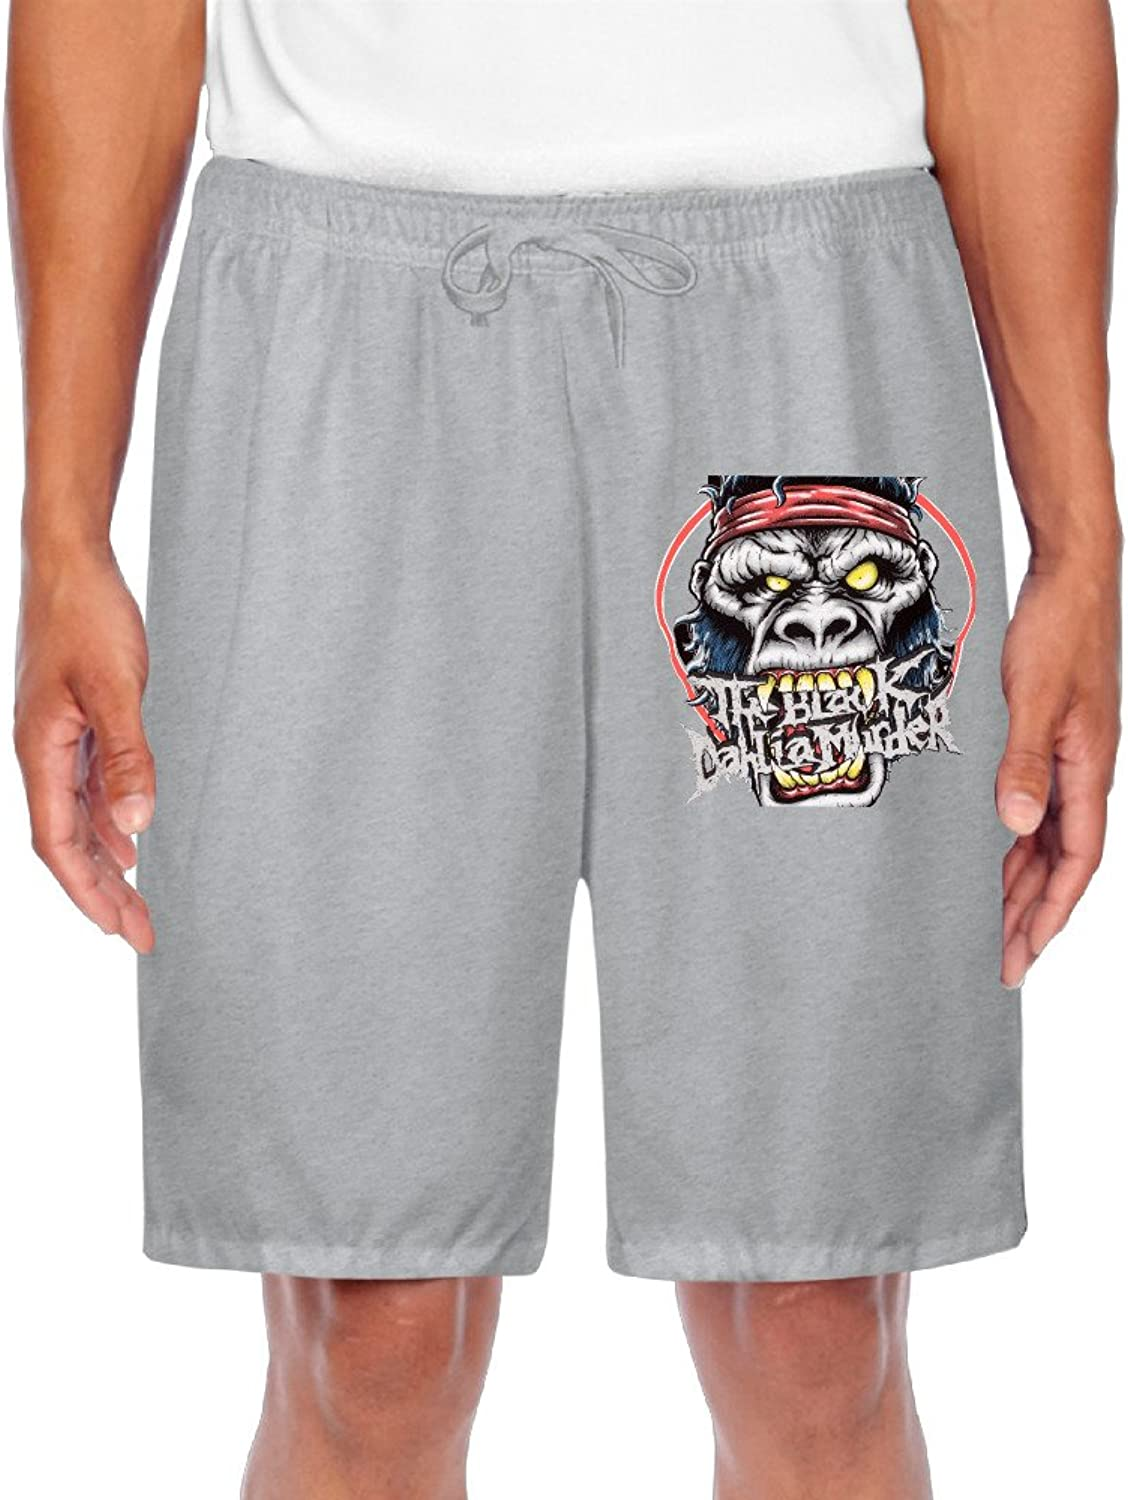 Men's The Black Dahlia Murder Album Shorts Gym